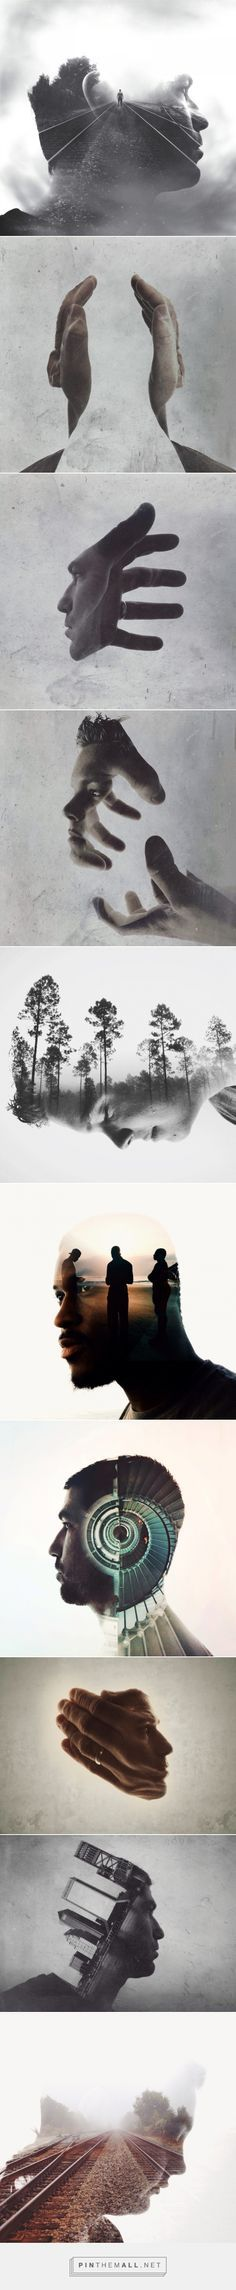 Double Exposure Portraits by Brandon Kidwell | Inspiration Grid | Design…